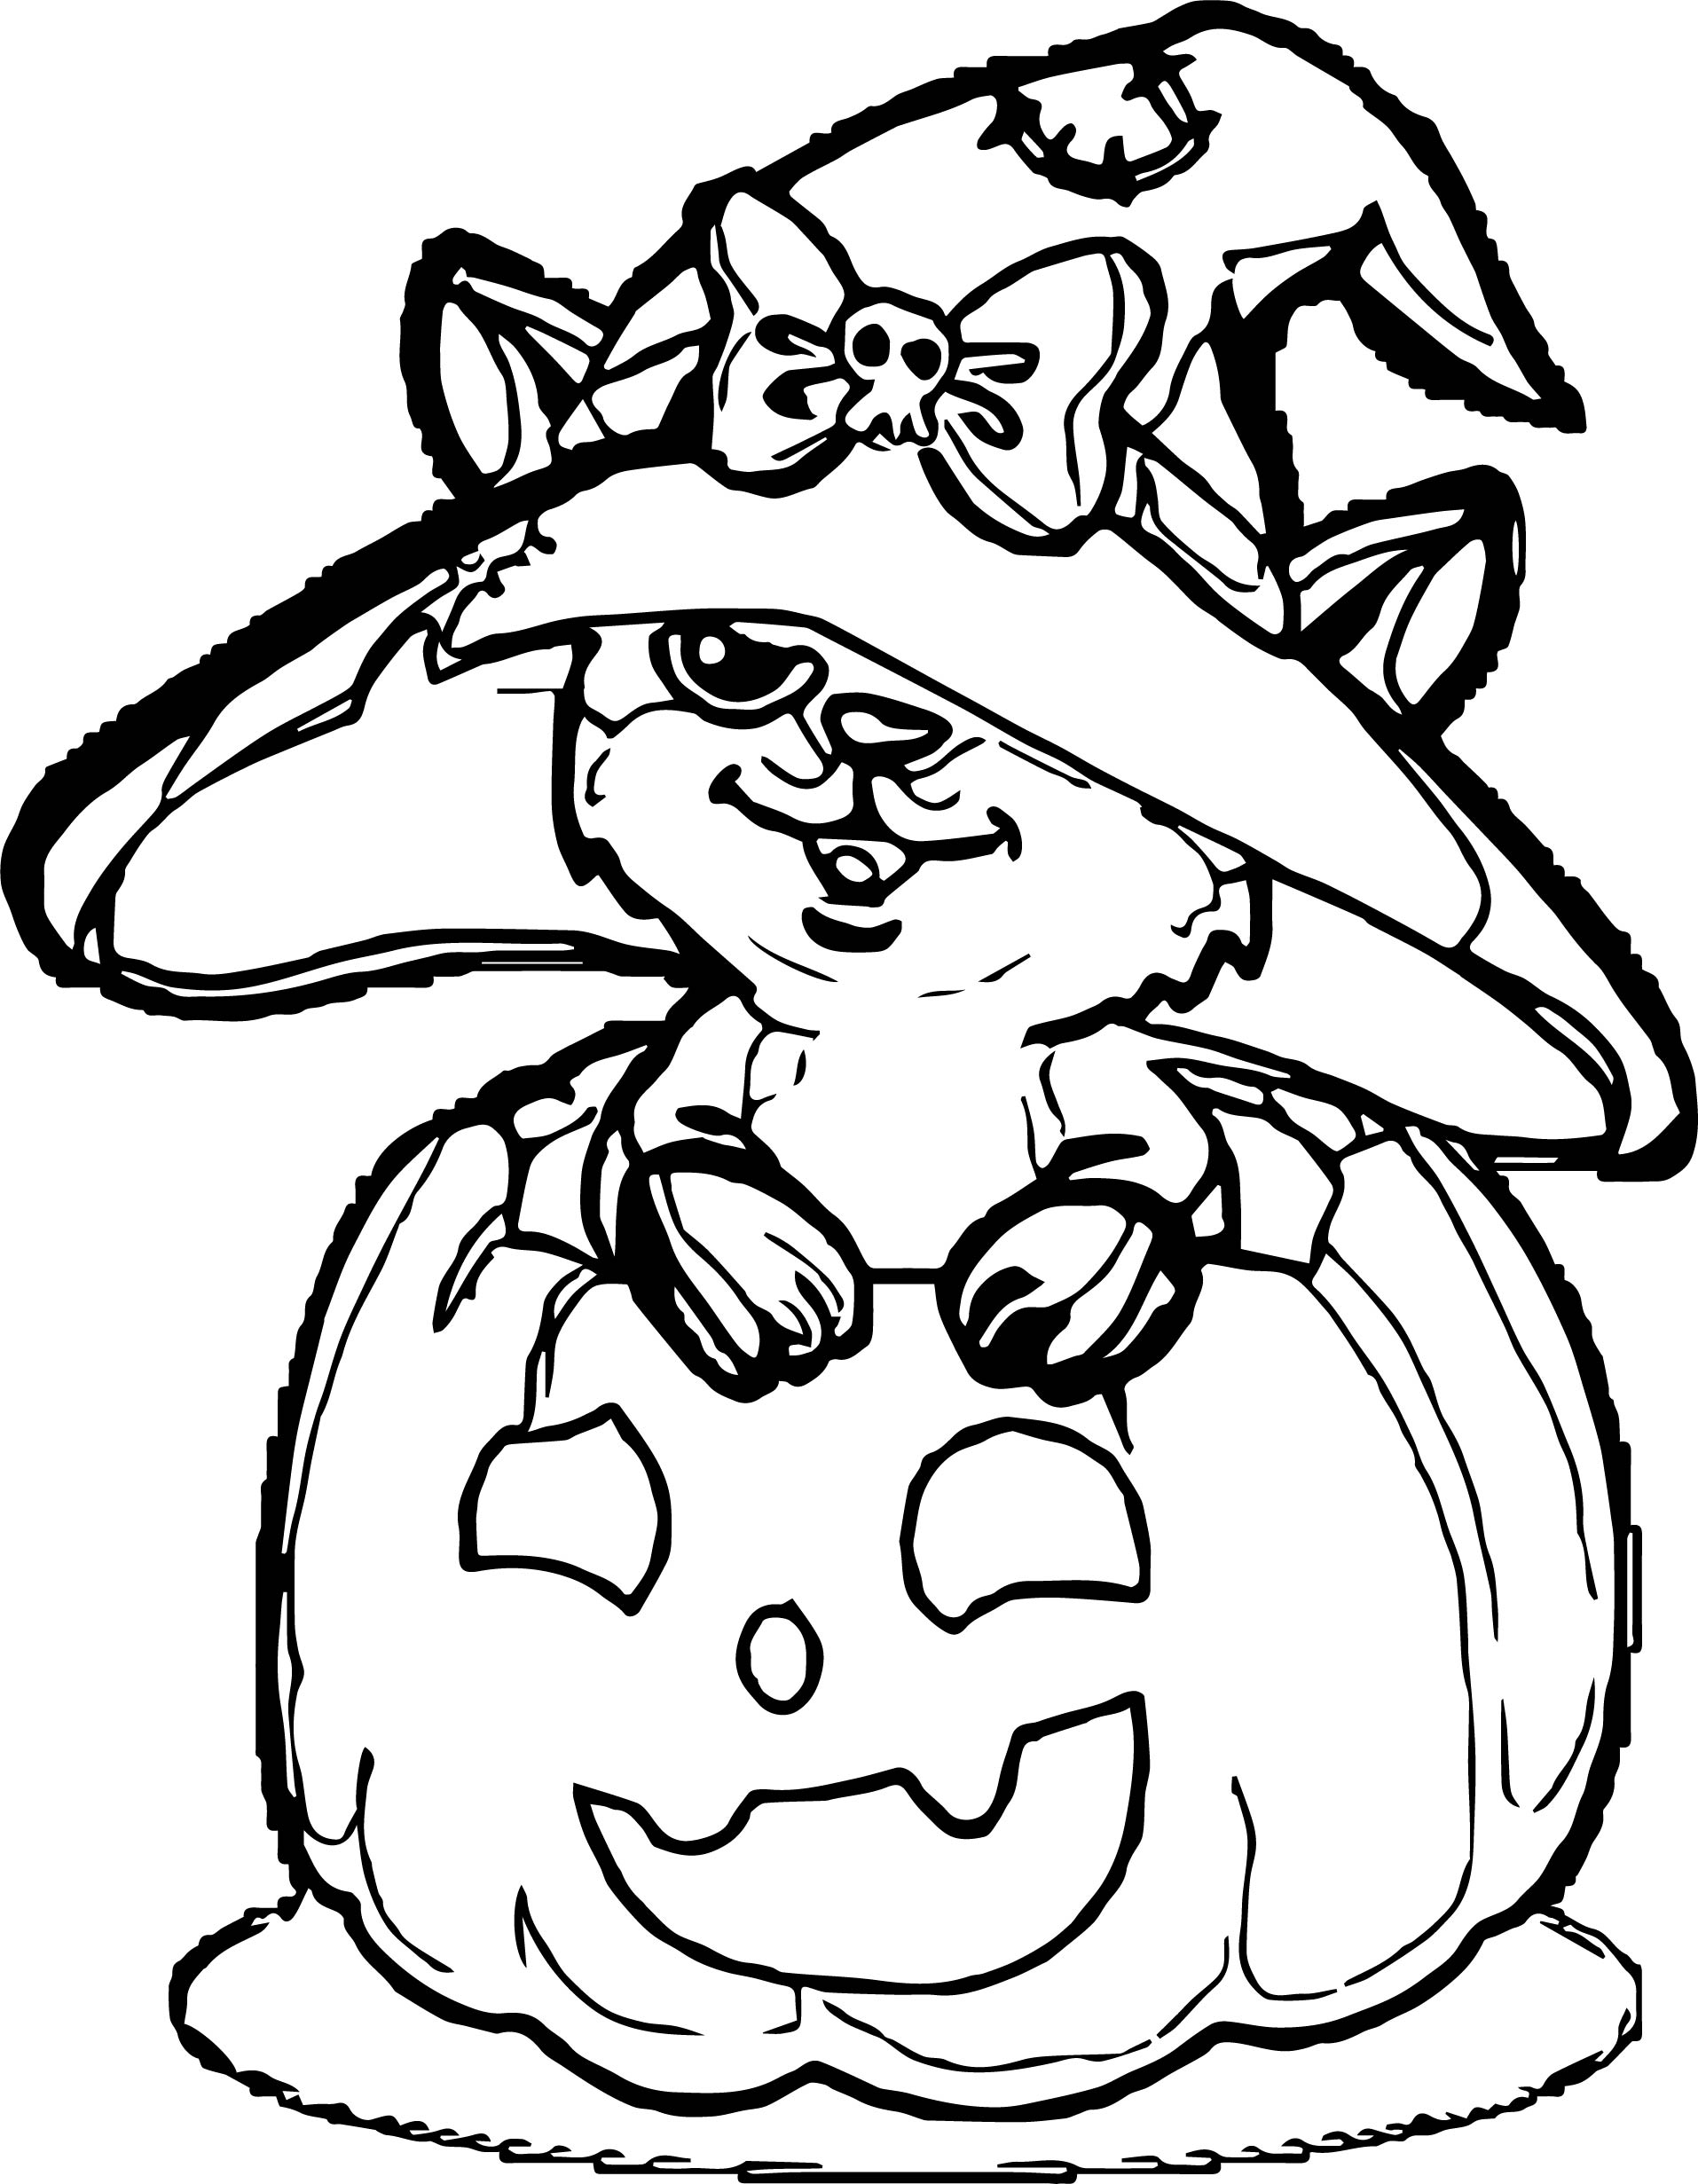 Cute Owl Halloween Children Coloring Page | Wecoloringpage.com